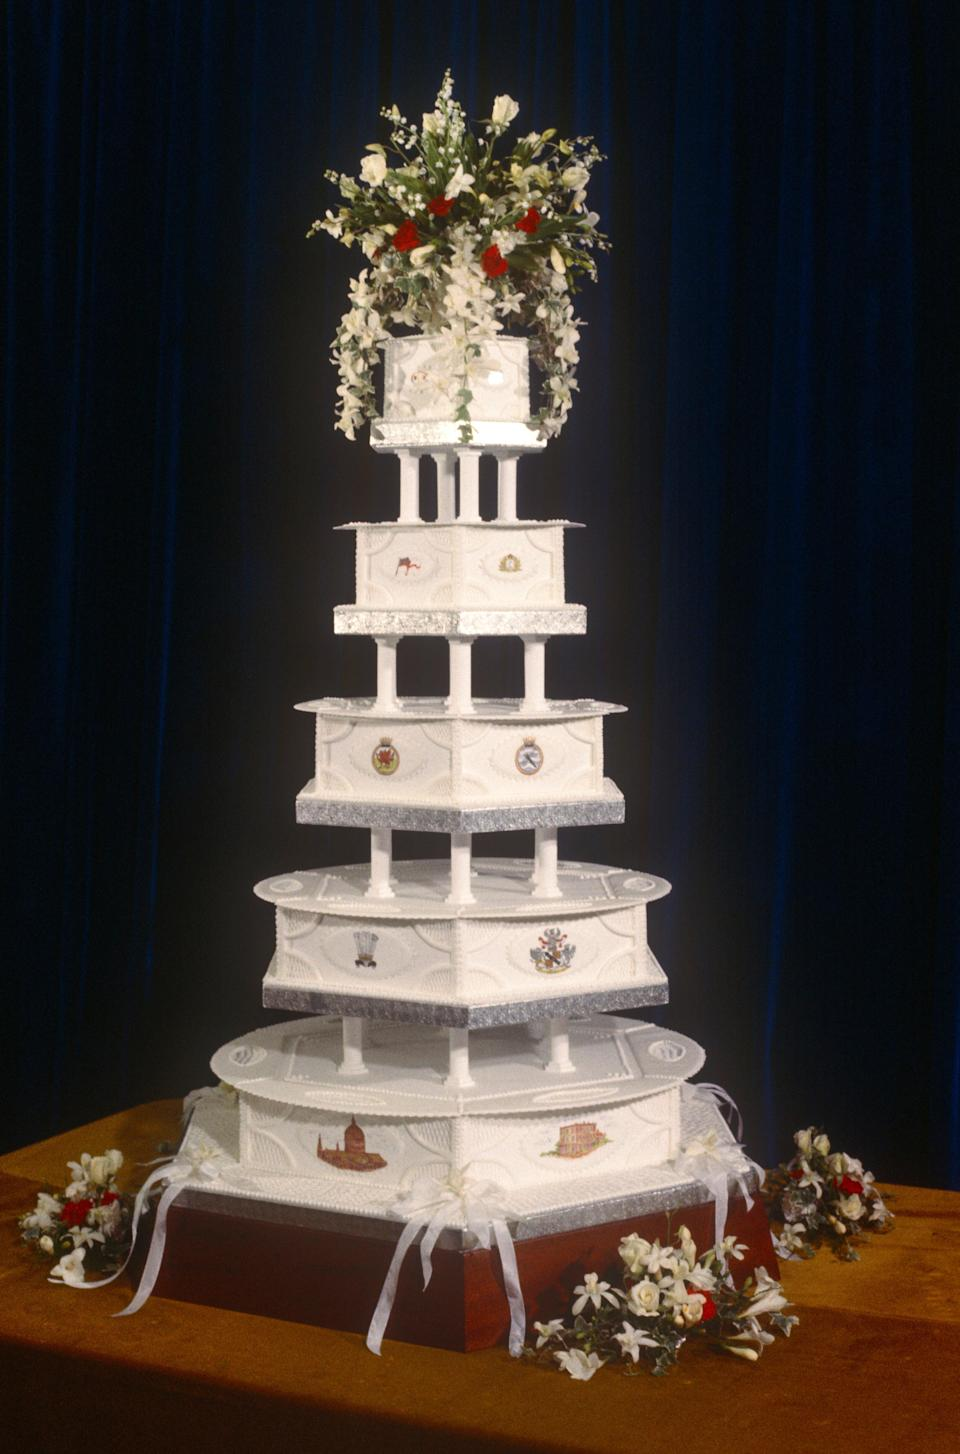 The wedding cake on display at Charles & Diana Royal Wedding, 29th July 1981 (Getty Images)